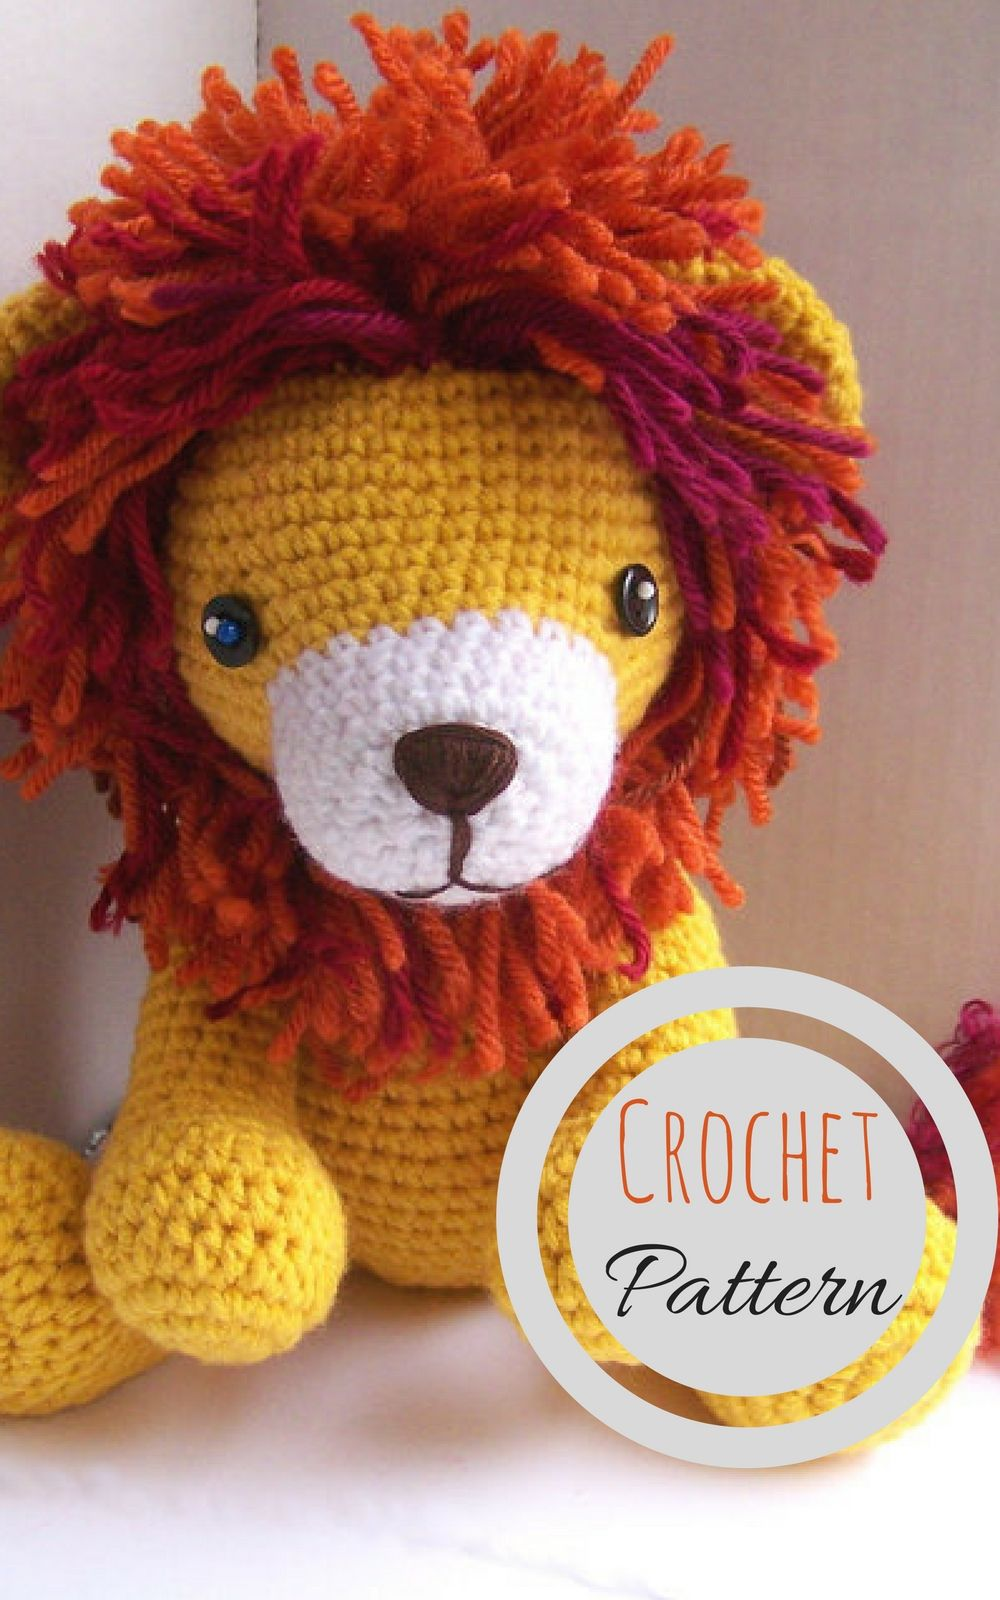 Instant Download Crochet Pattern-Baby Lion-Toy Lion-Amigurumi Lion-DIY  Crochet Toy-Stuffed Toy Animal-Crochet Stuffed Lion  crochet  ad e5df727ea59